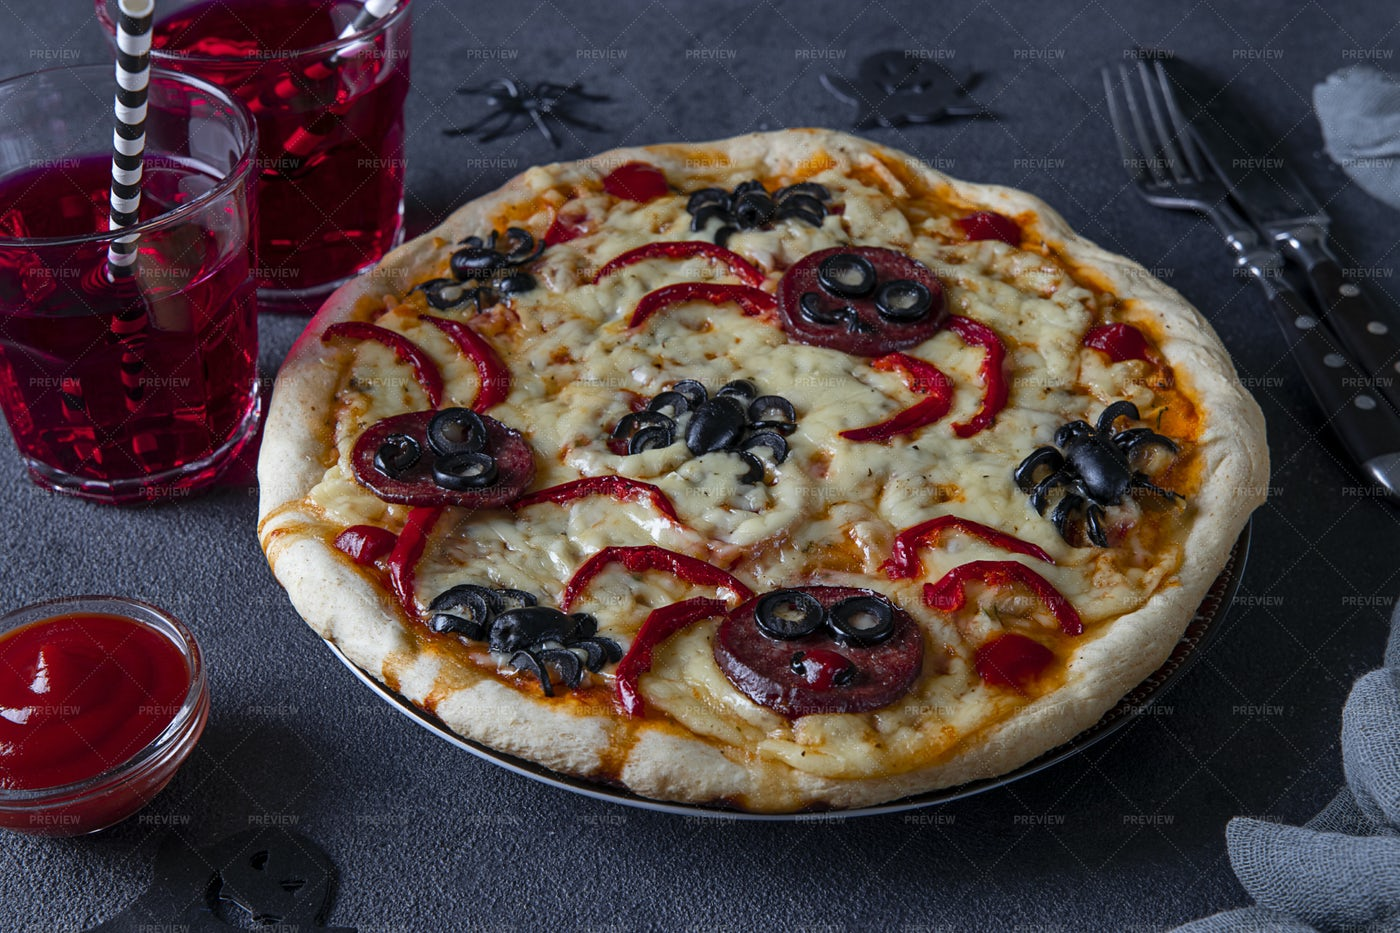 Halloween Pizza With Spiders: Stock Photos